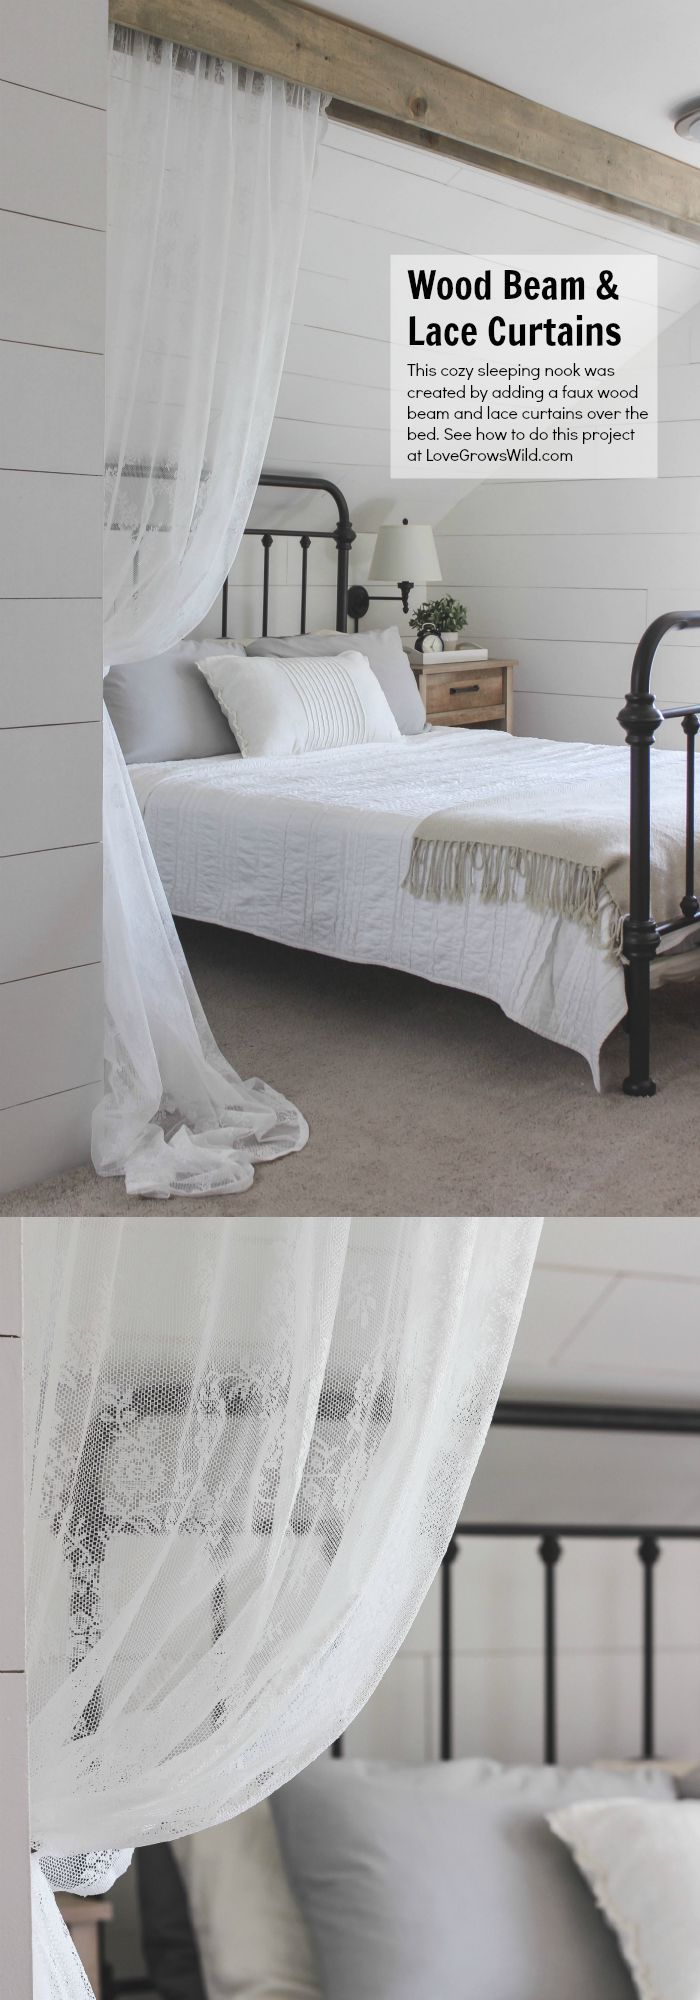 80 quot x72 quot shabby rustic chic burlap shower curtain ivory lace ruffles - This Cozy Sleeping Nook Was Created By Adding A Faux Wood Beam And Lace Curtains Over